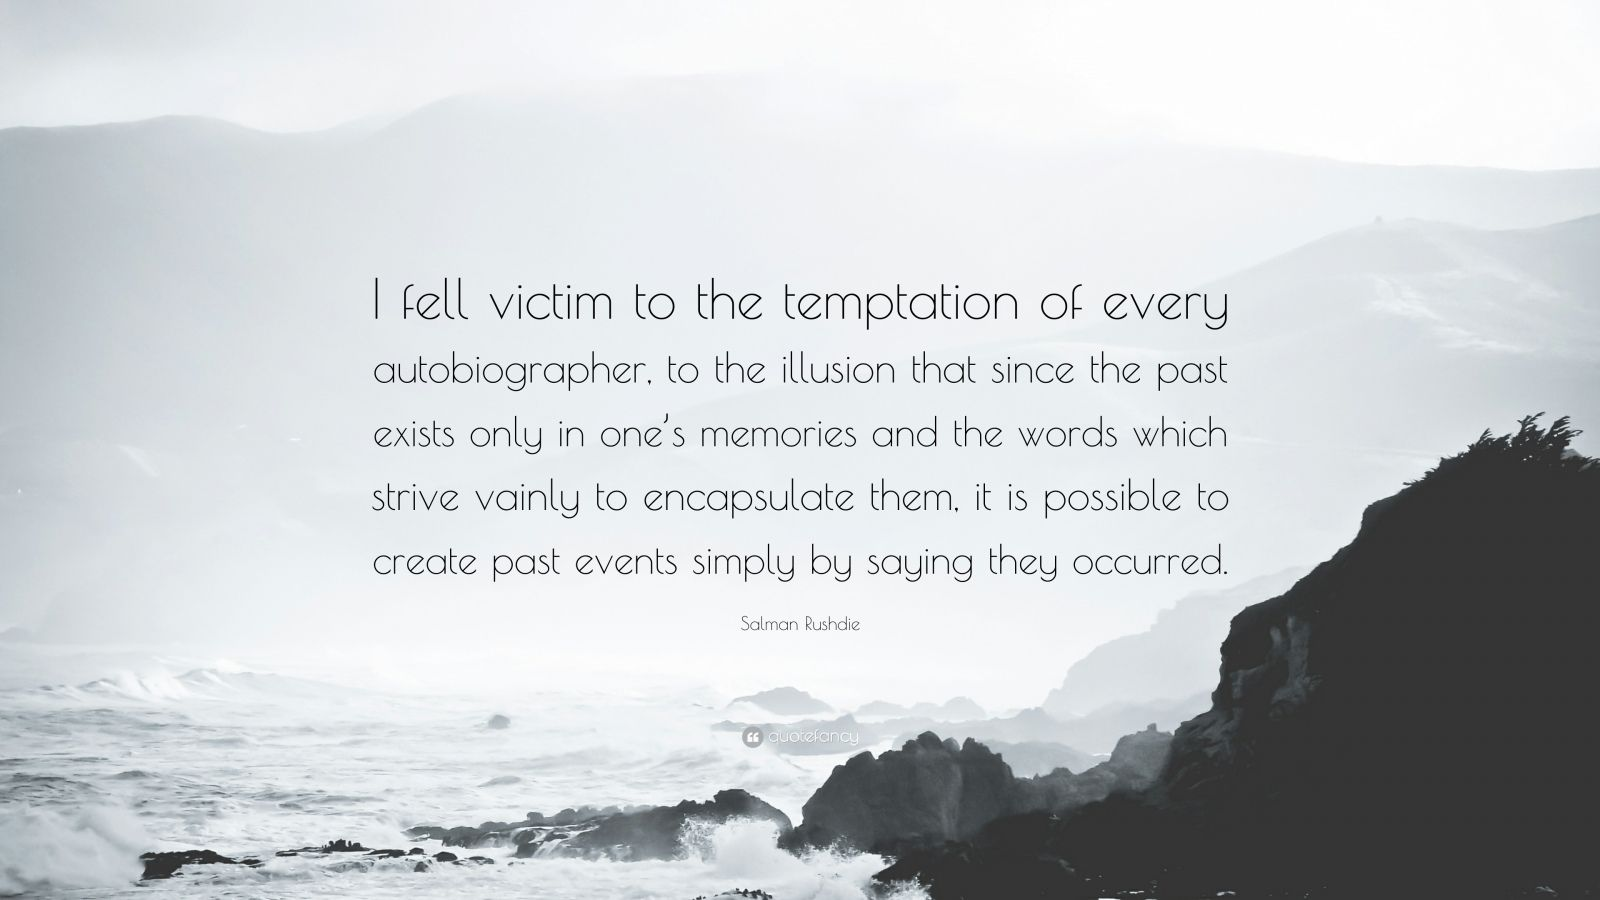 """Salman Rushdie Quote: """"I fell victim to the temptation of every autobiographer, to the illusion that since the past exists only in one's memories and the words which strive vainly to encapsulate them, it is possible to create past events simply by saying they occurred."""""""